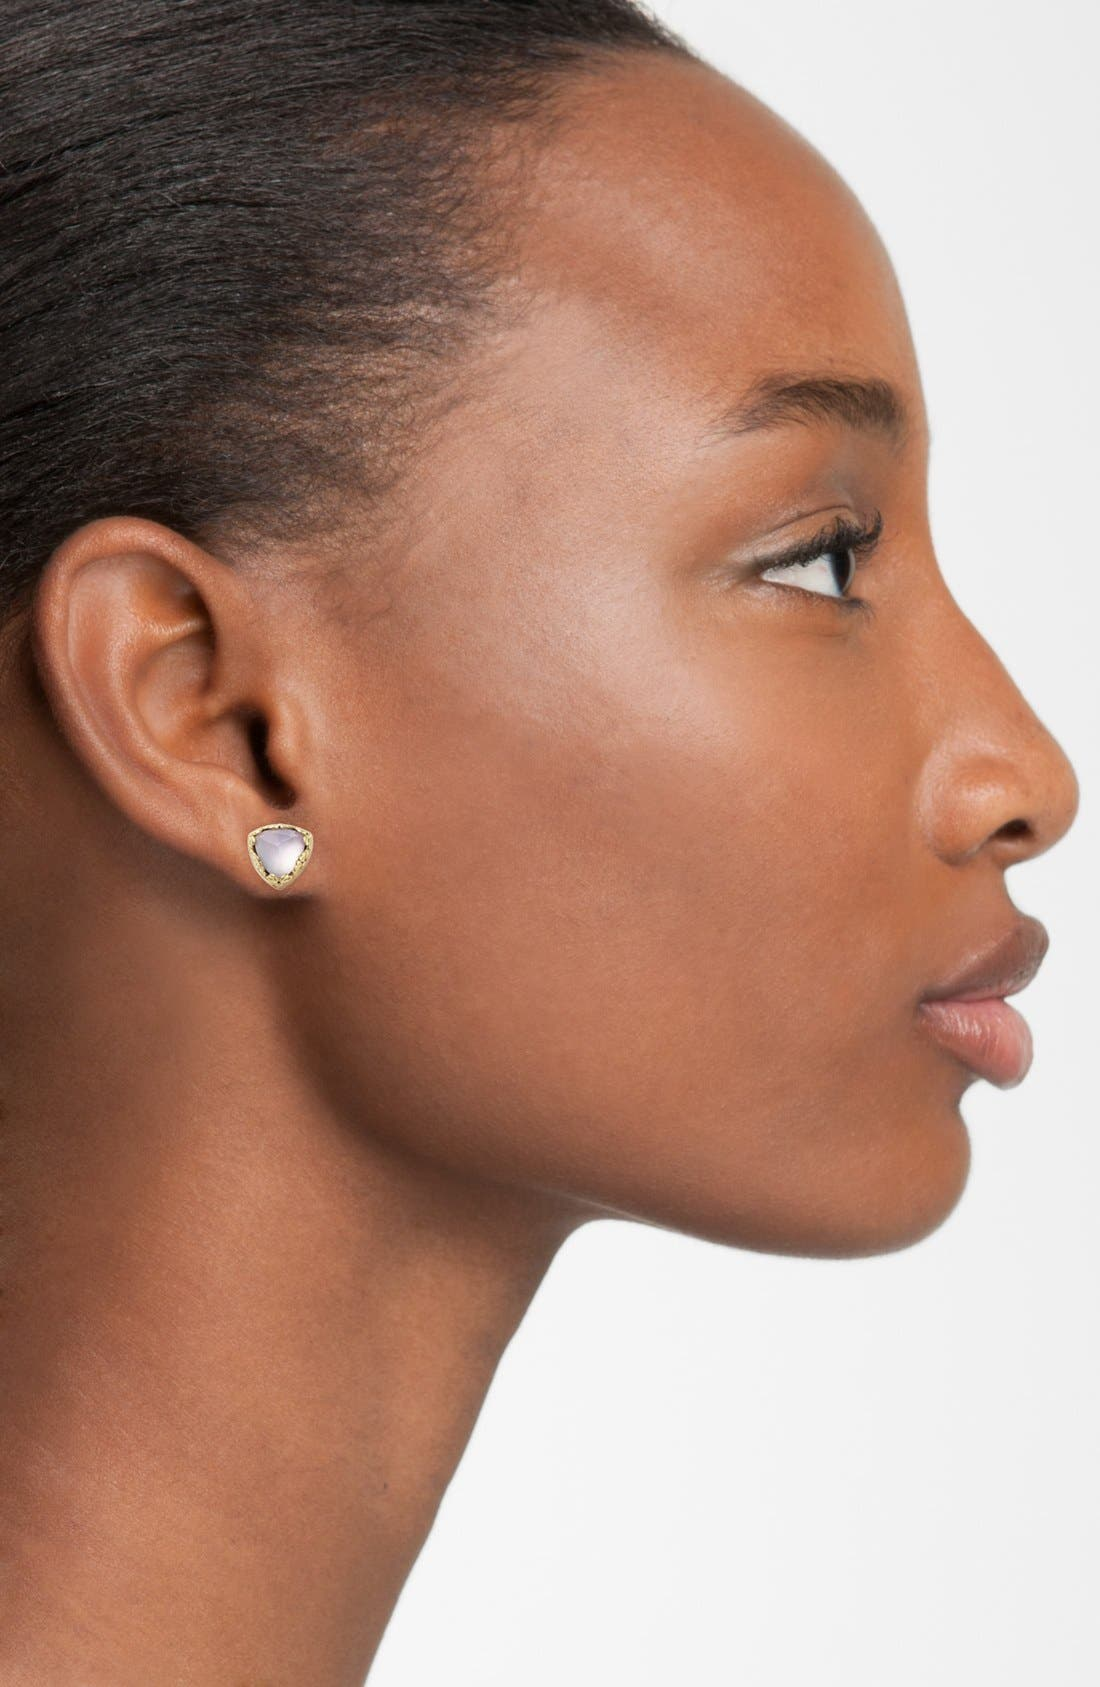 'Iliada' Doublet Stud Earrings,                             Alternate thumbnail 2, color,                             040